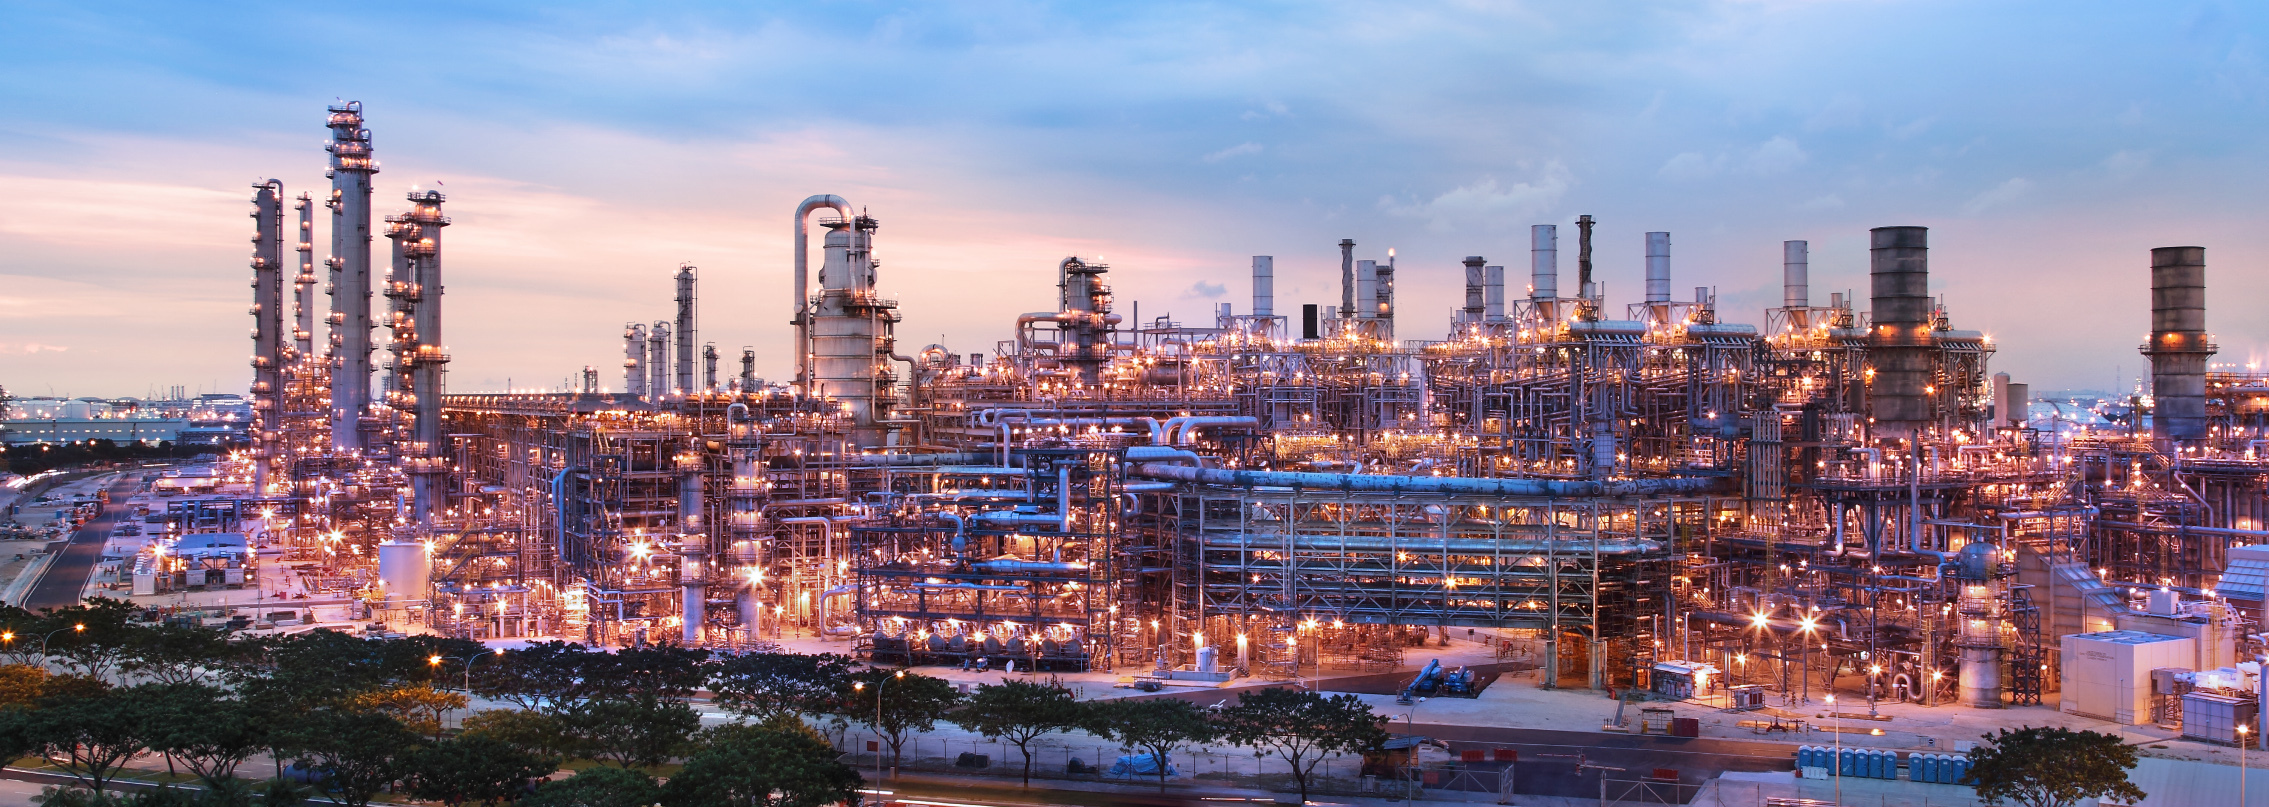 ExxonMobil Singapore Chemical Plant Expansion in Operation